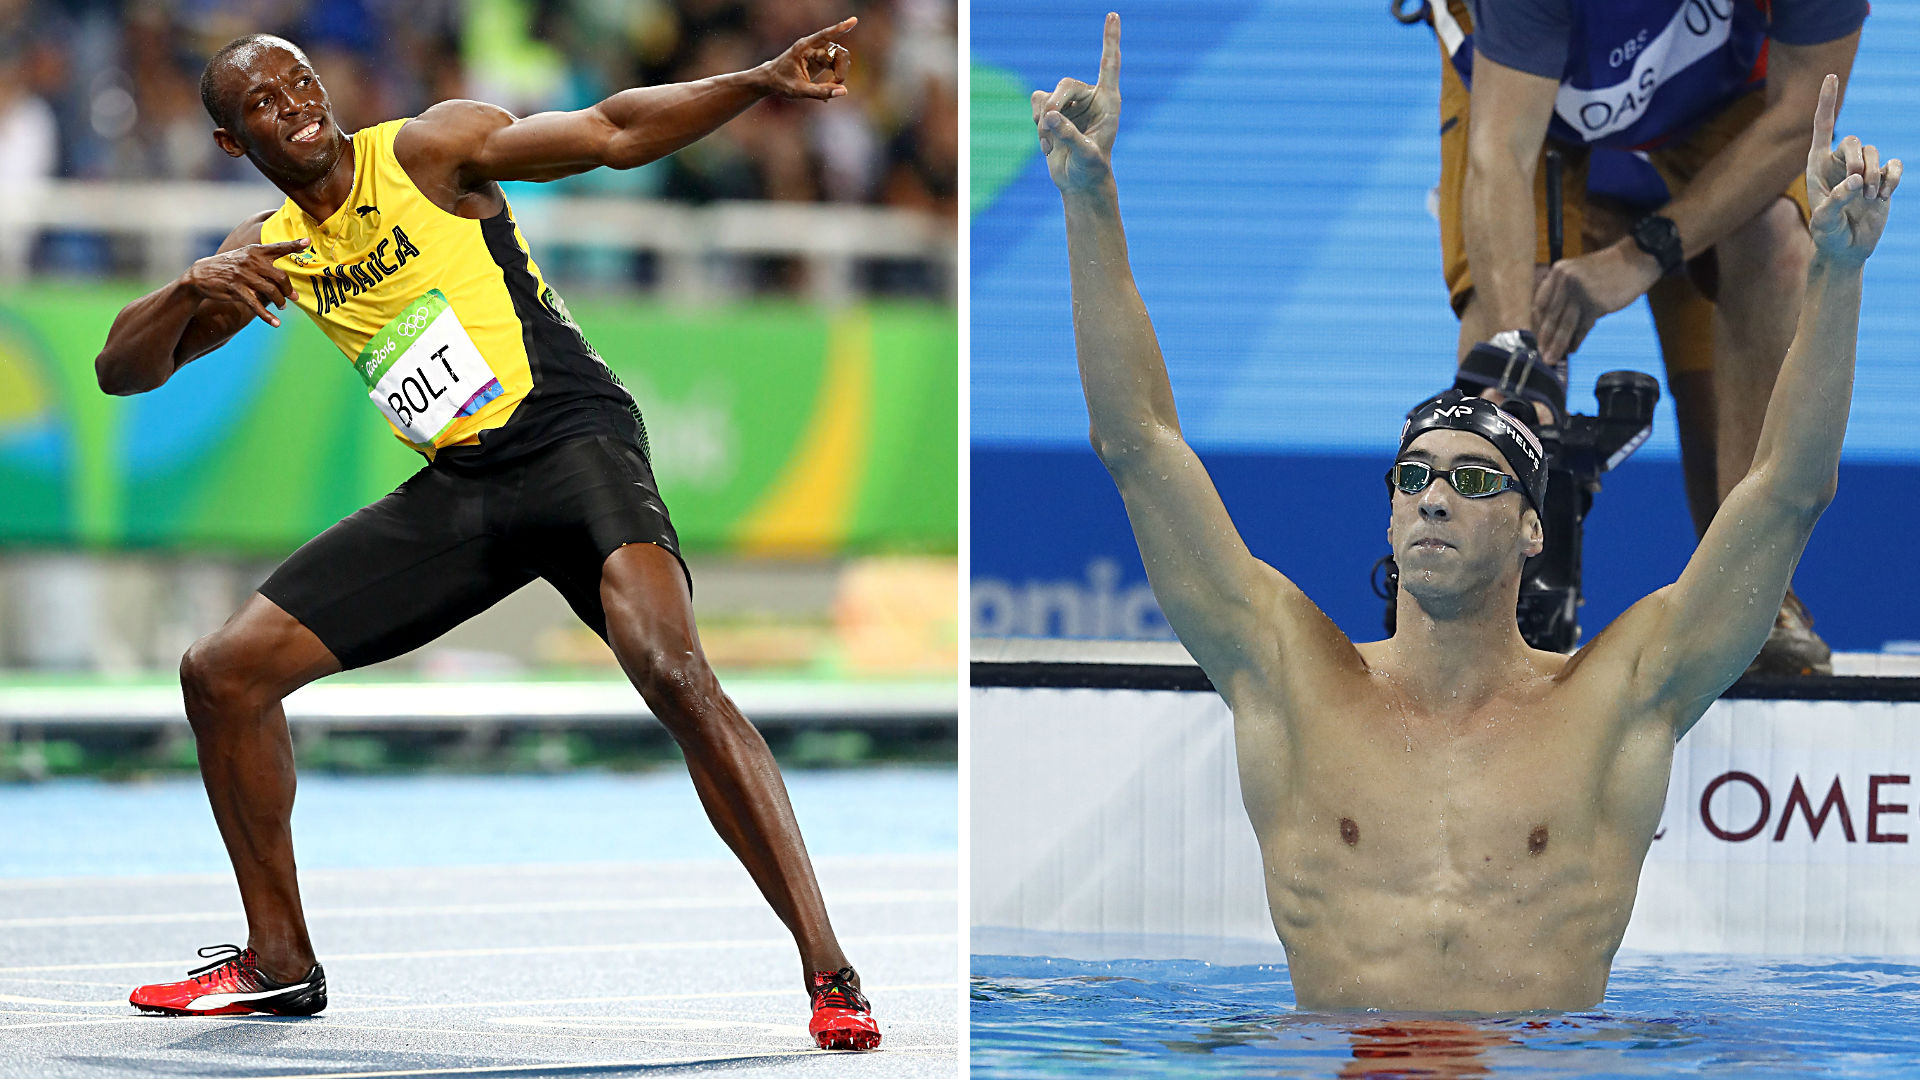 Usain Bolt and Michael Phelps, arguably the two greatest Olympians of all-time